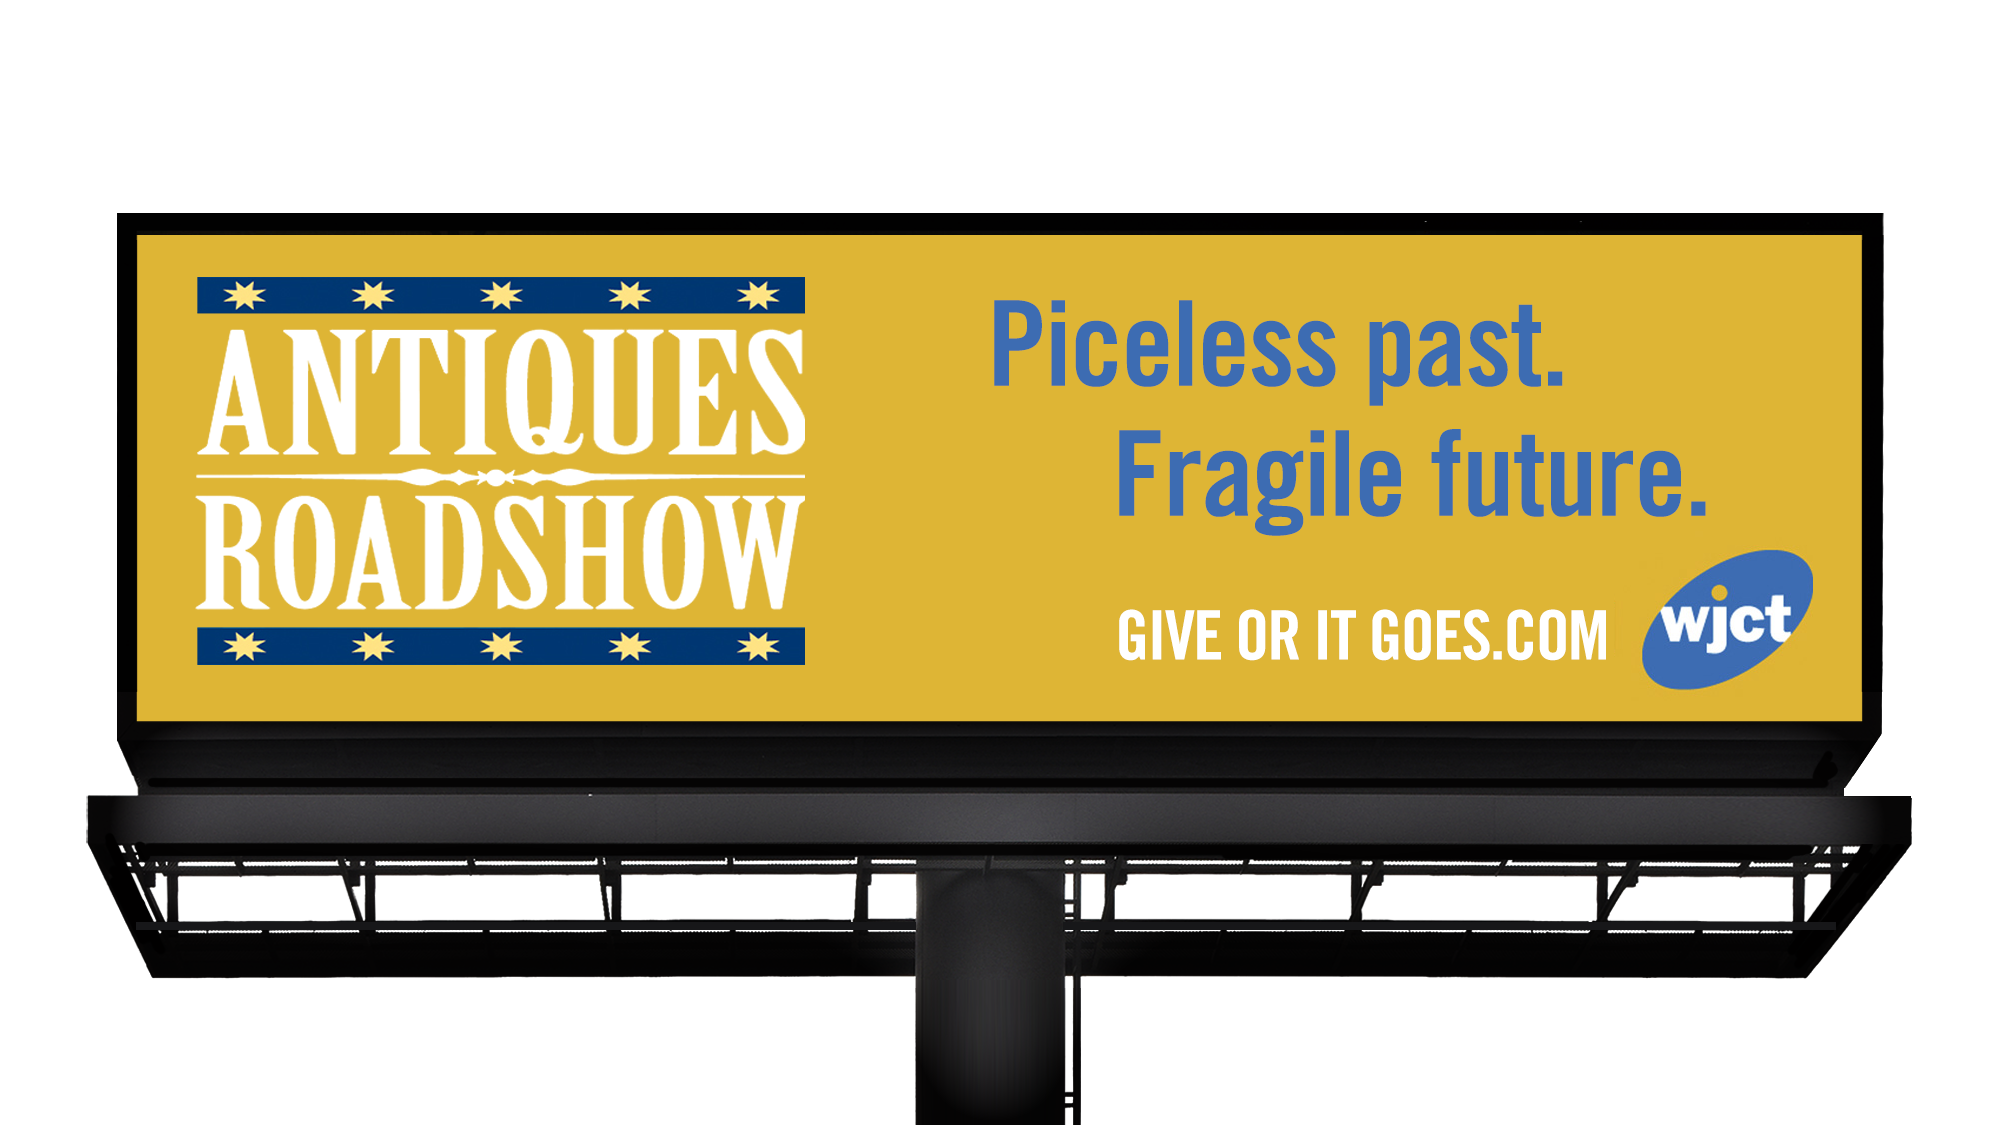 """WJCT billboard that says: """"Priceless past. Fragile future."""""""